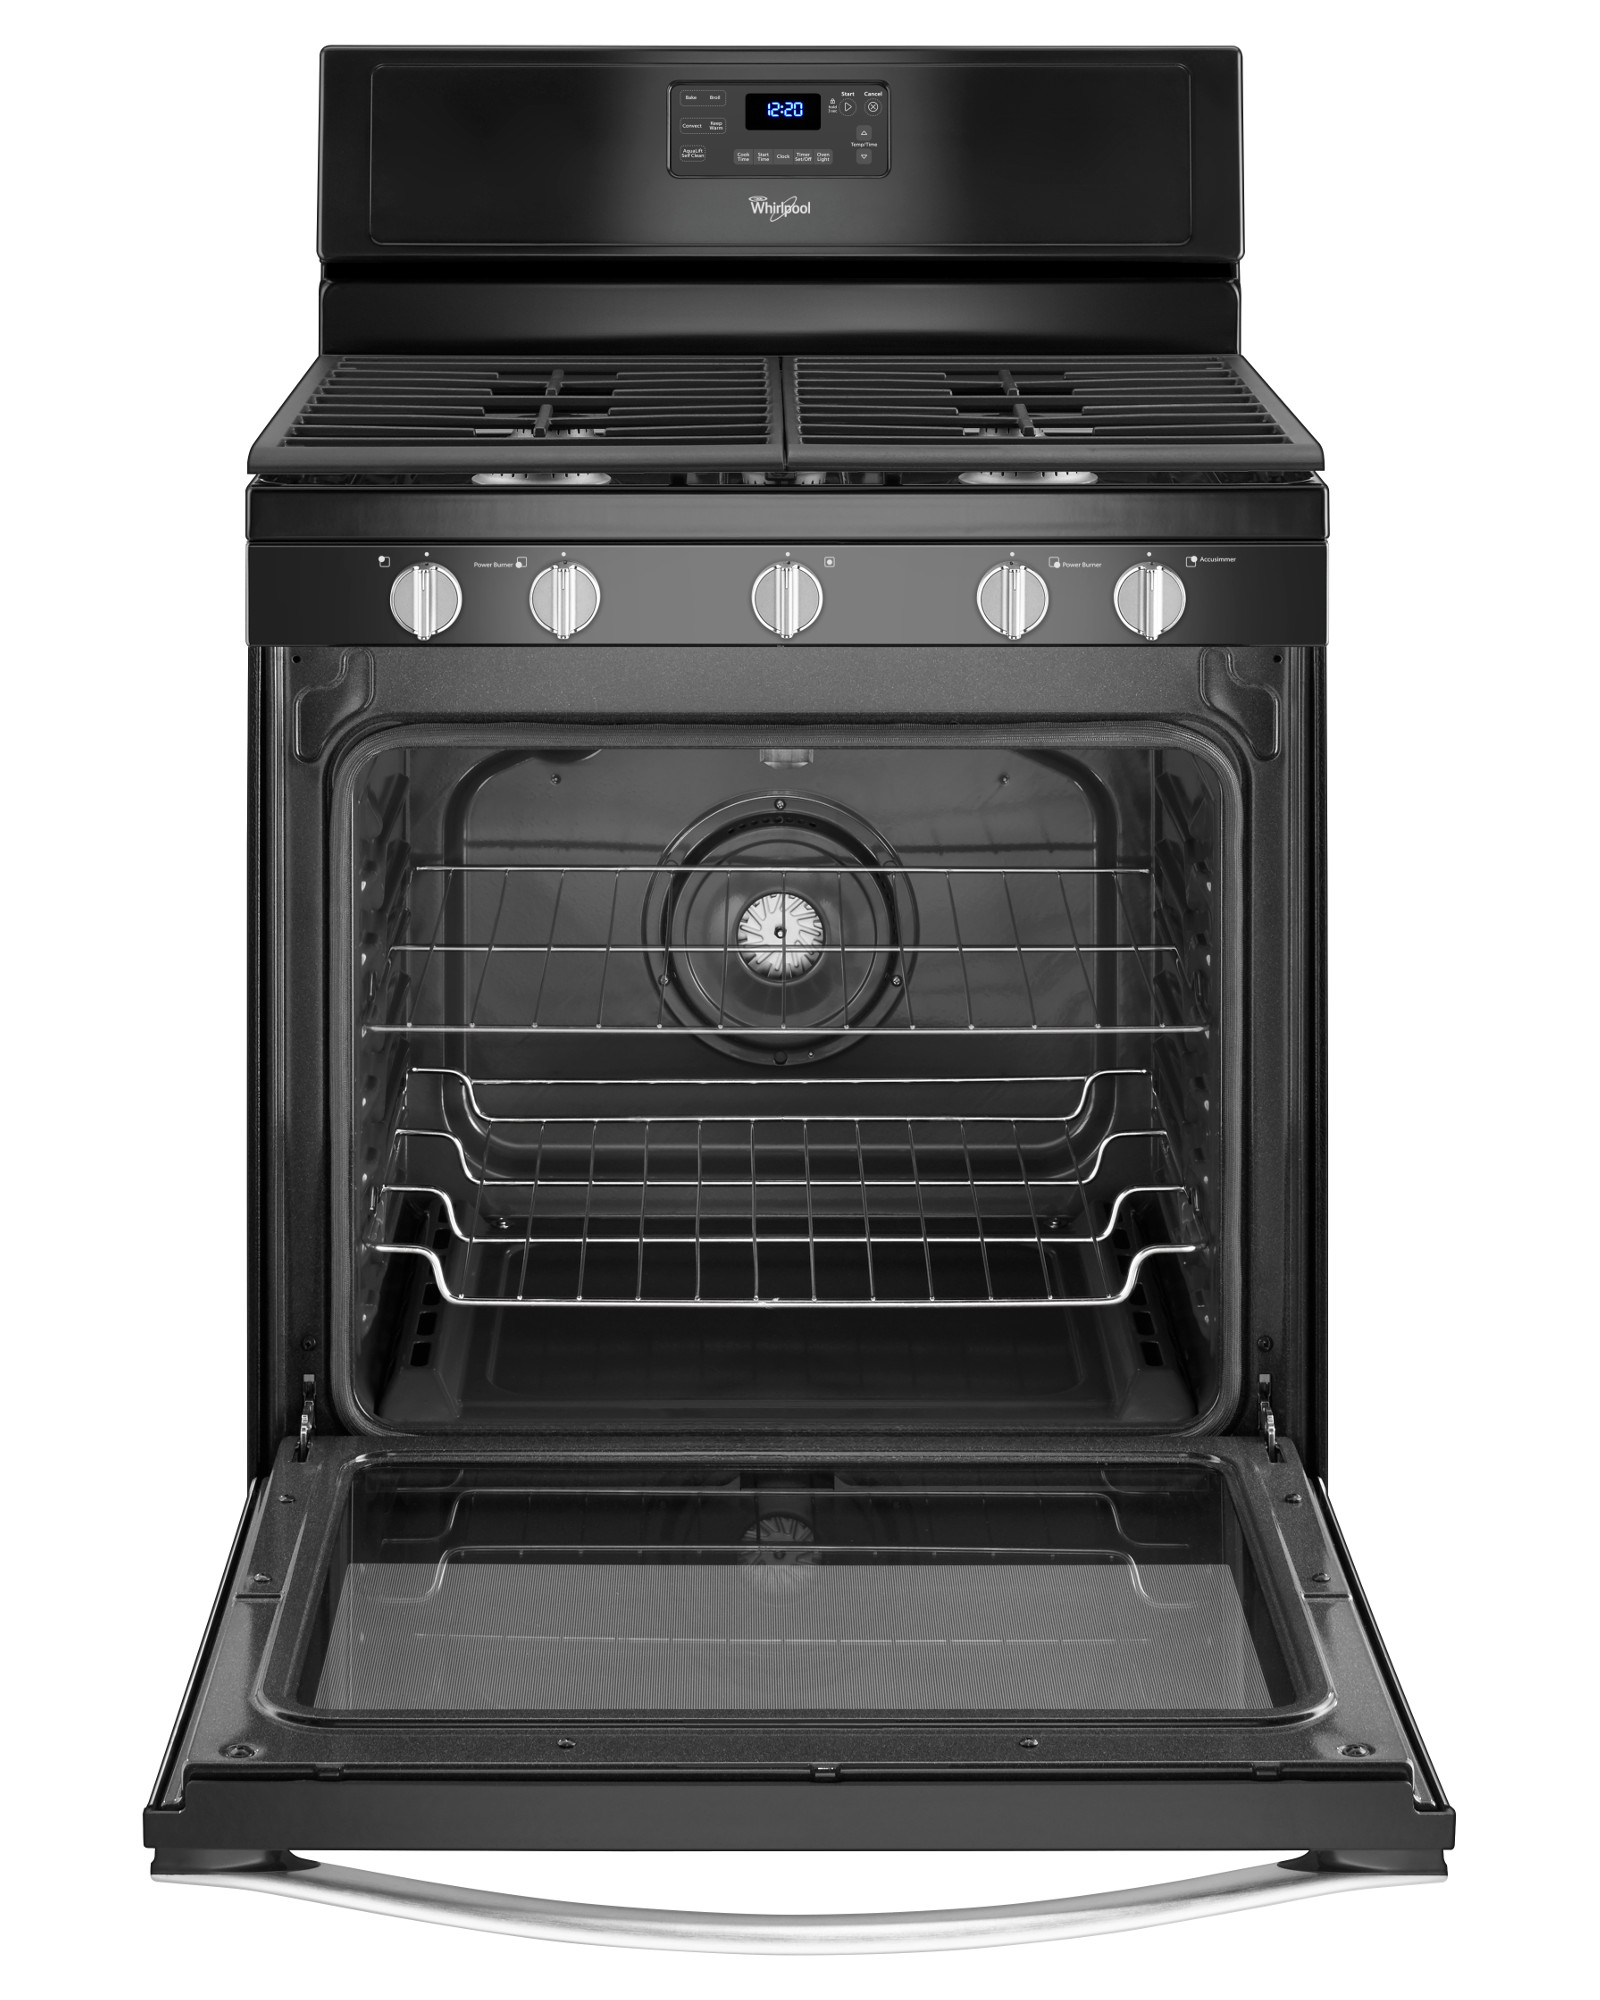 Whirlpool WFG540H0EE 5.8 cu. ft. Freestanding Gas Range - Black Ice